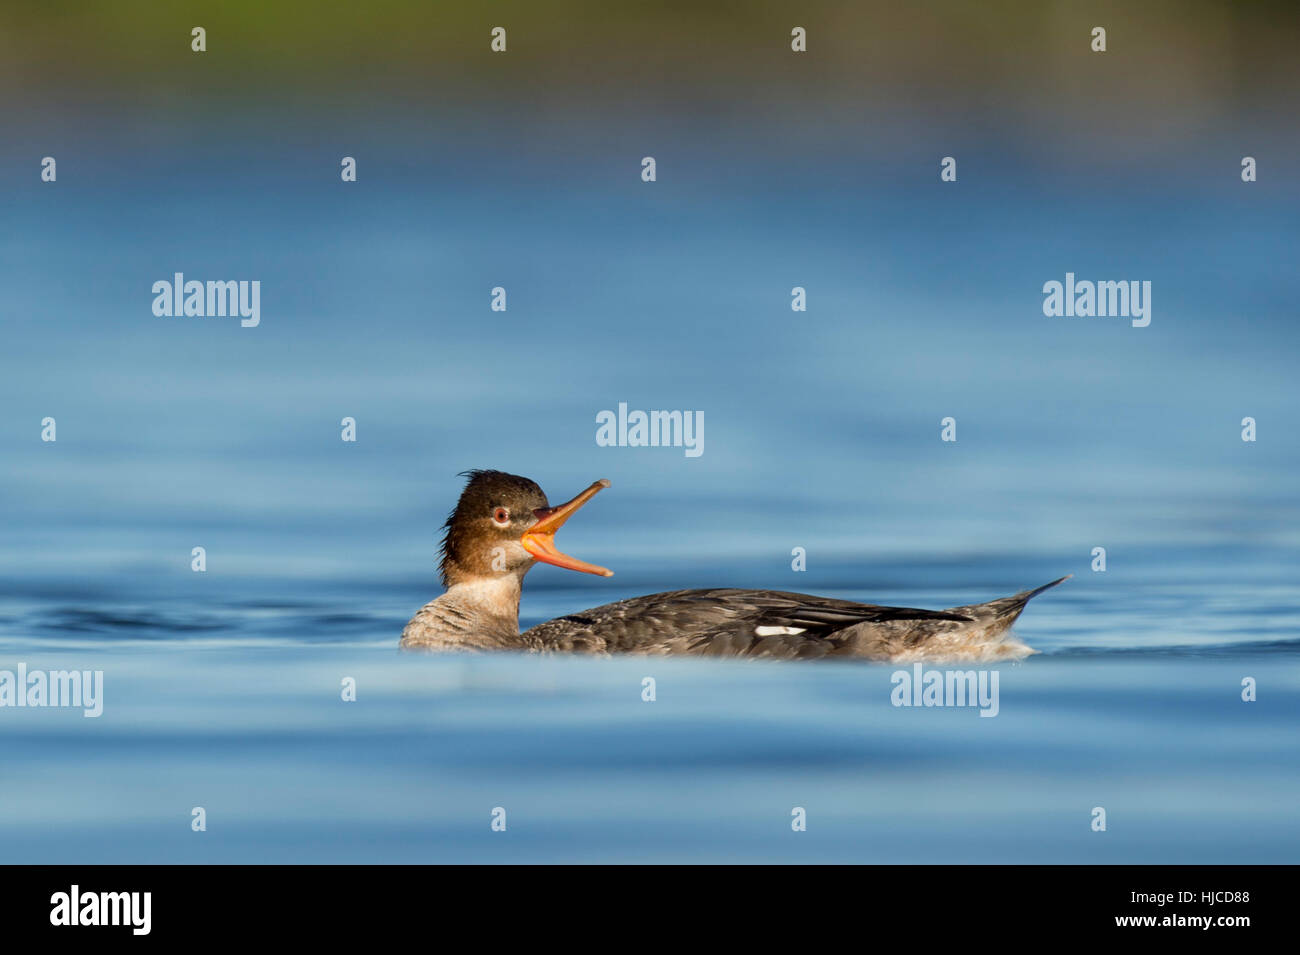 This female Red-breasted Merganser calling out loudly at other ducks nearby as it swims along the bright blue water. - Stock Image